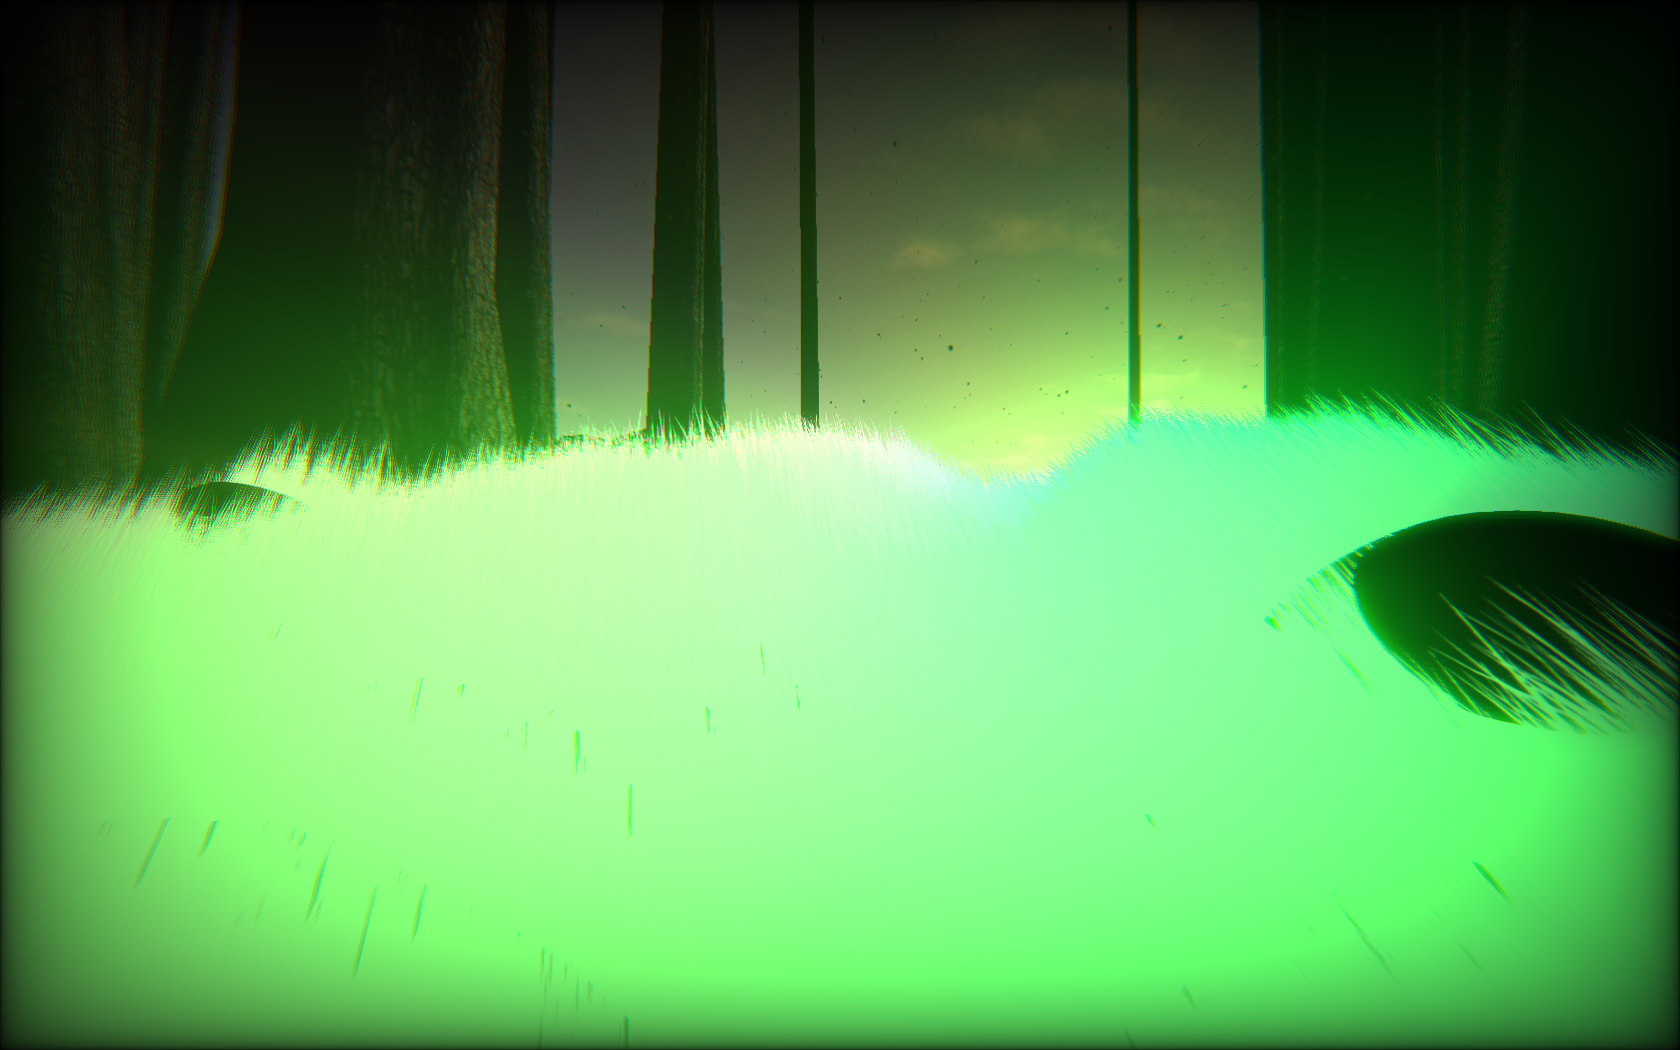 intoTrees_green